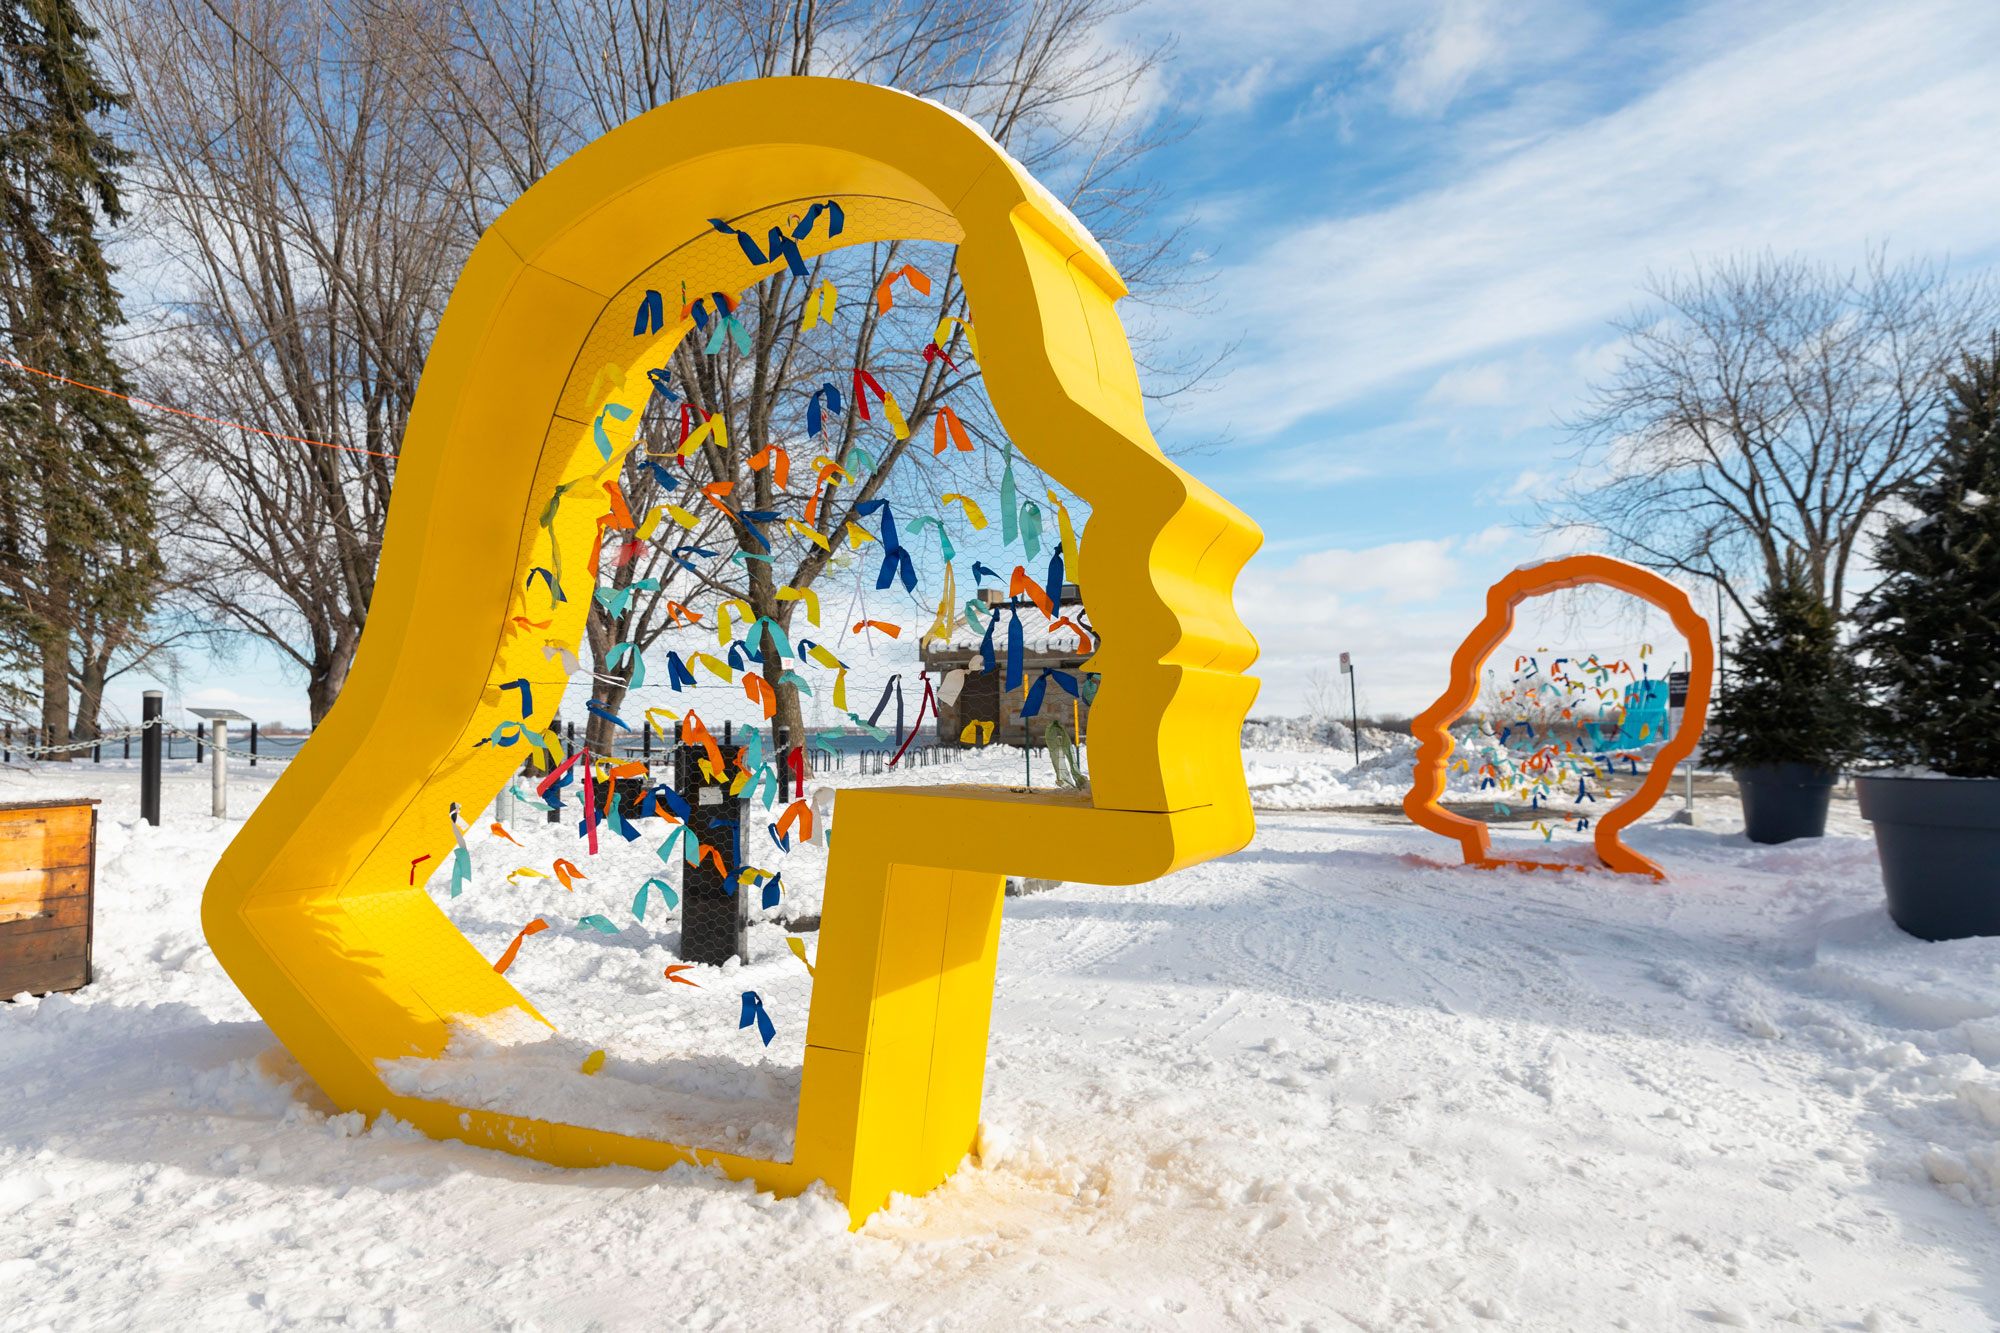 Stations hivernales Montreal - Creative Placemaking - Public Art - MASSIVart